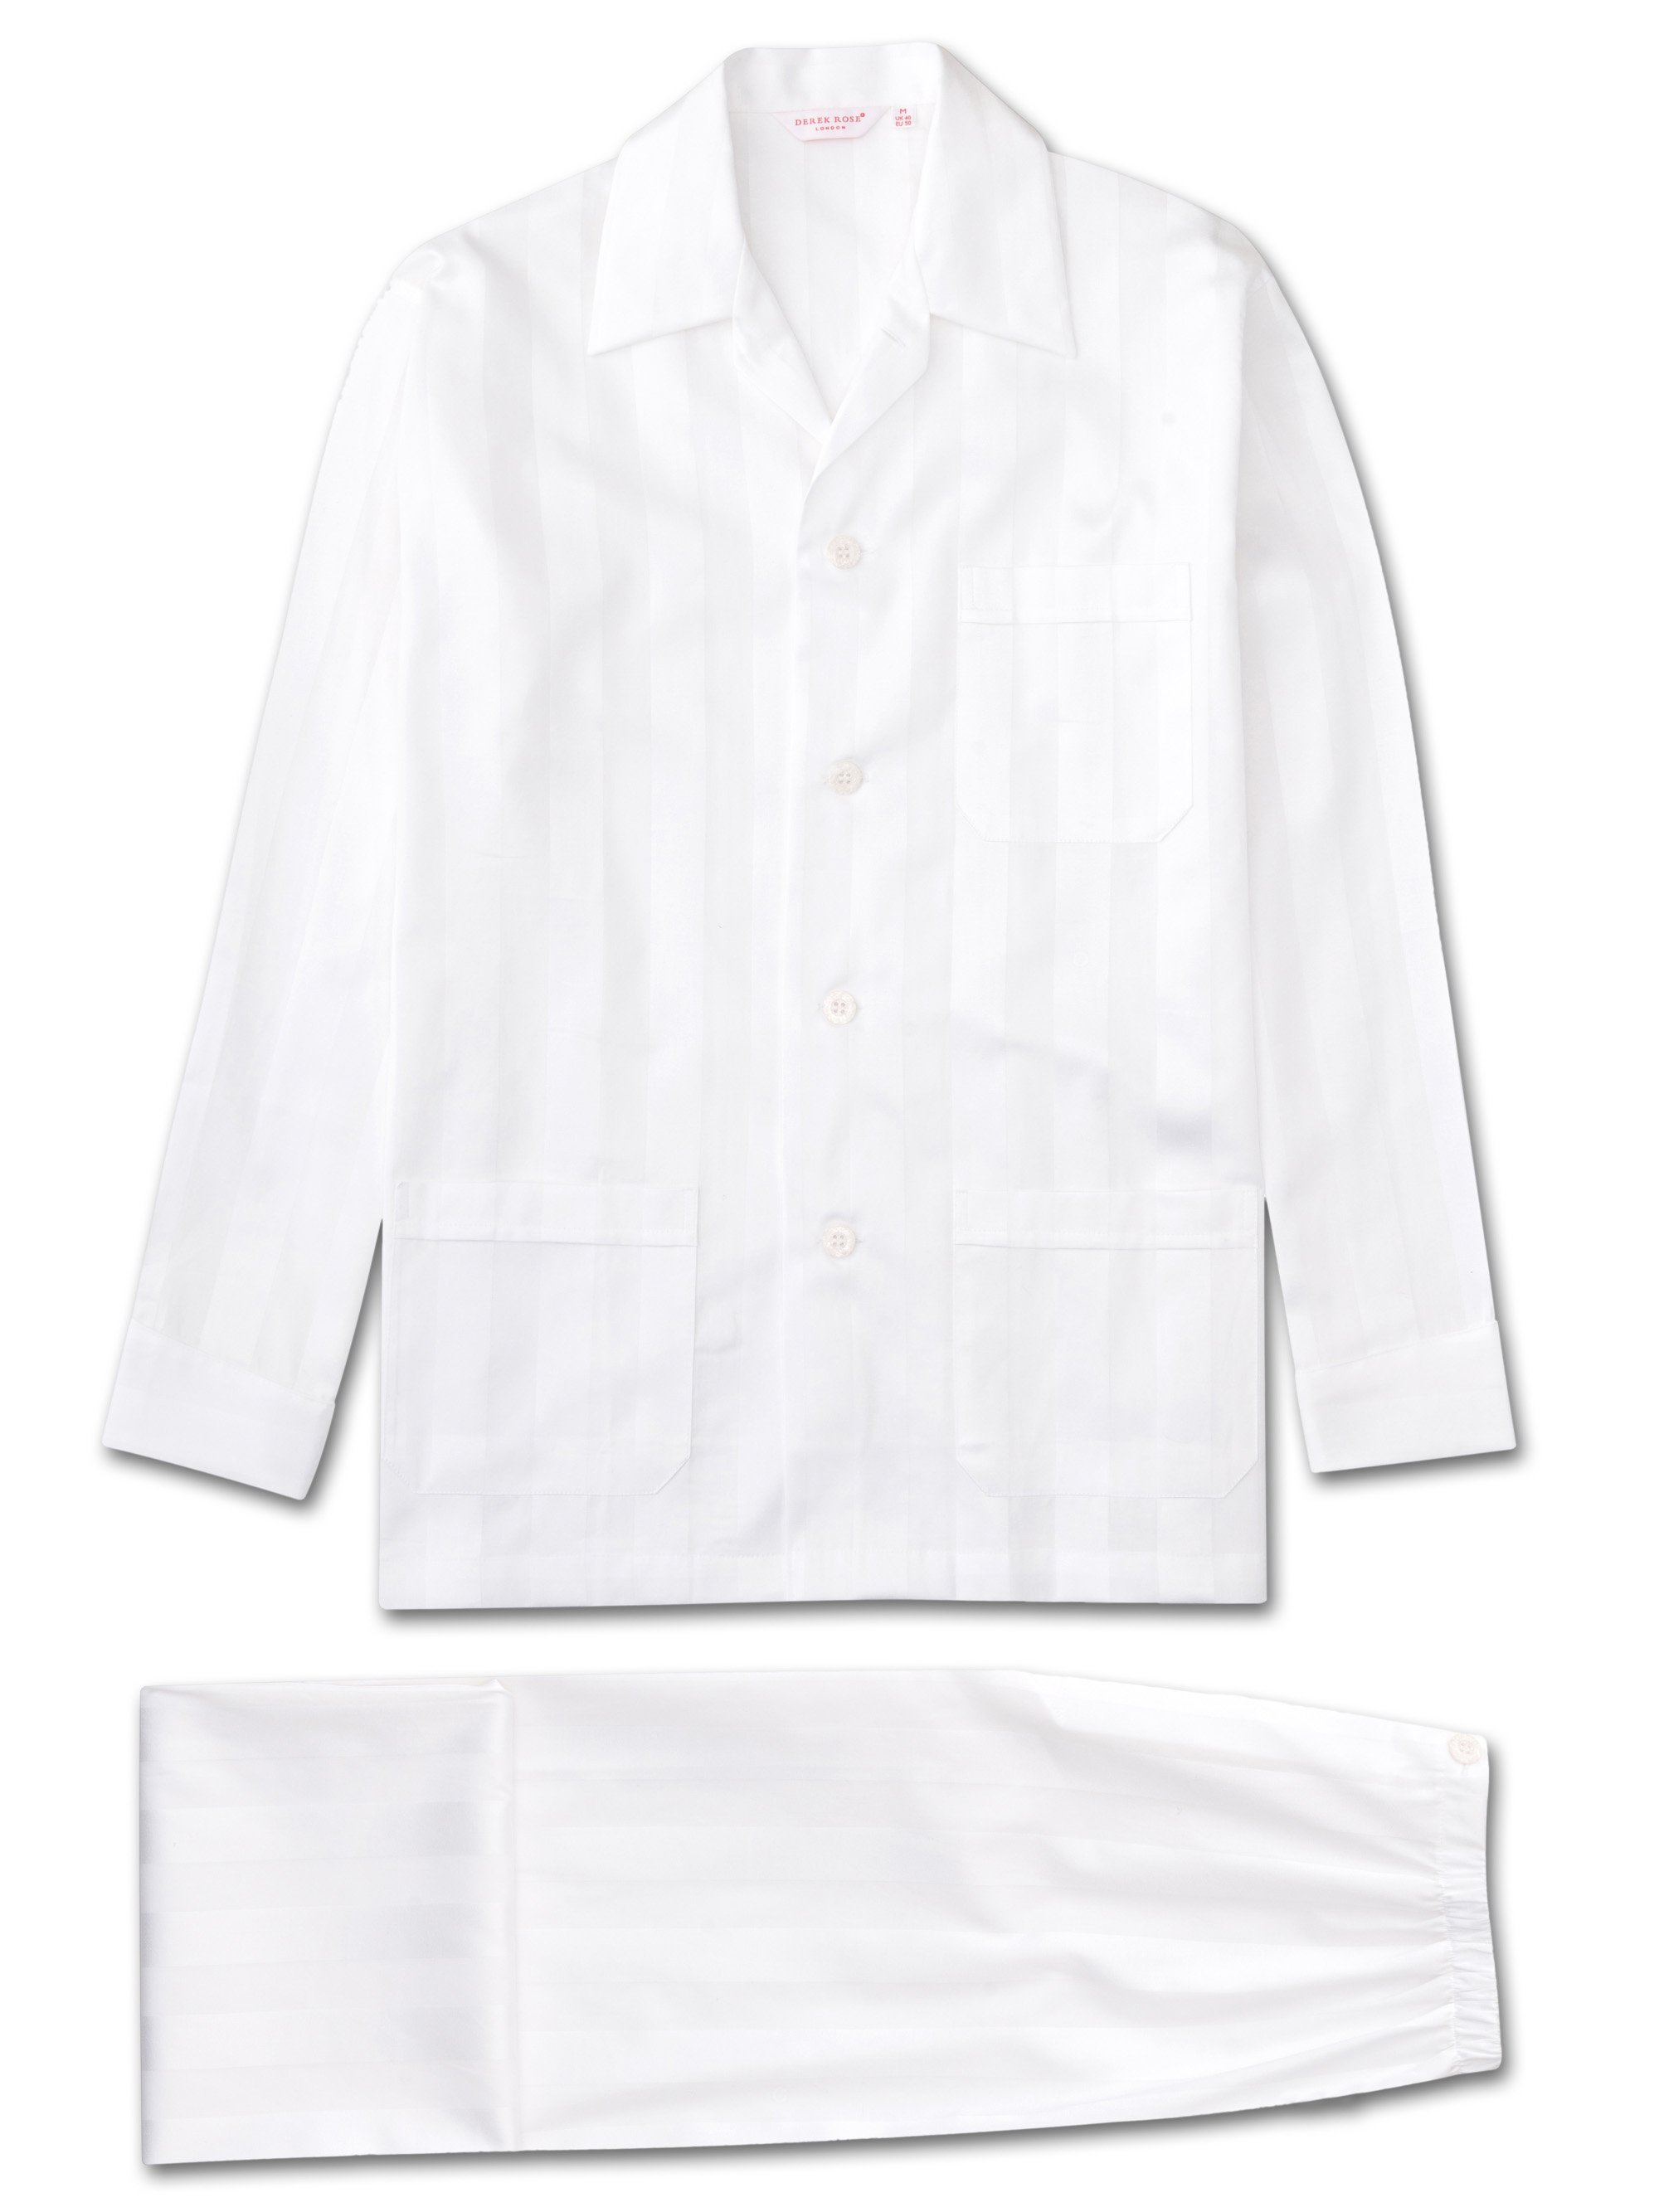 Derek Rose Men's Classic Fit Pyjamas — Lingfield Cotton Satin Stripe White